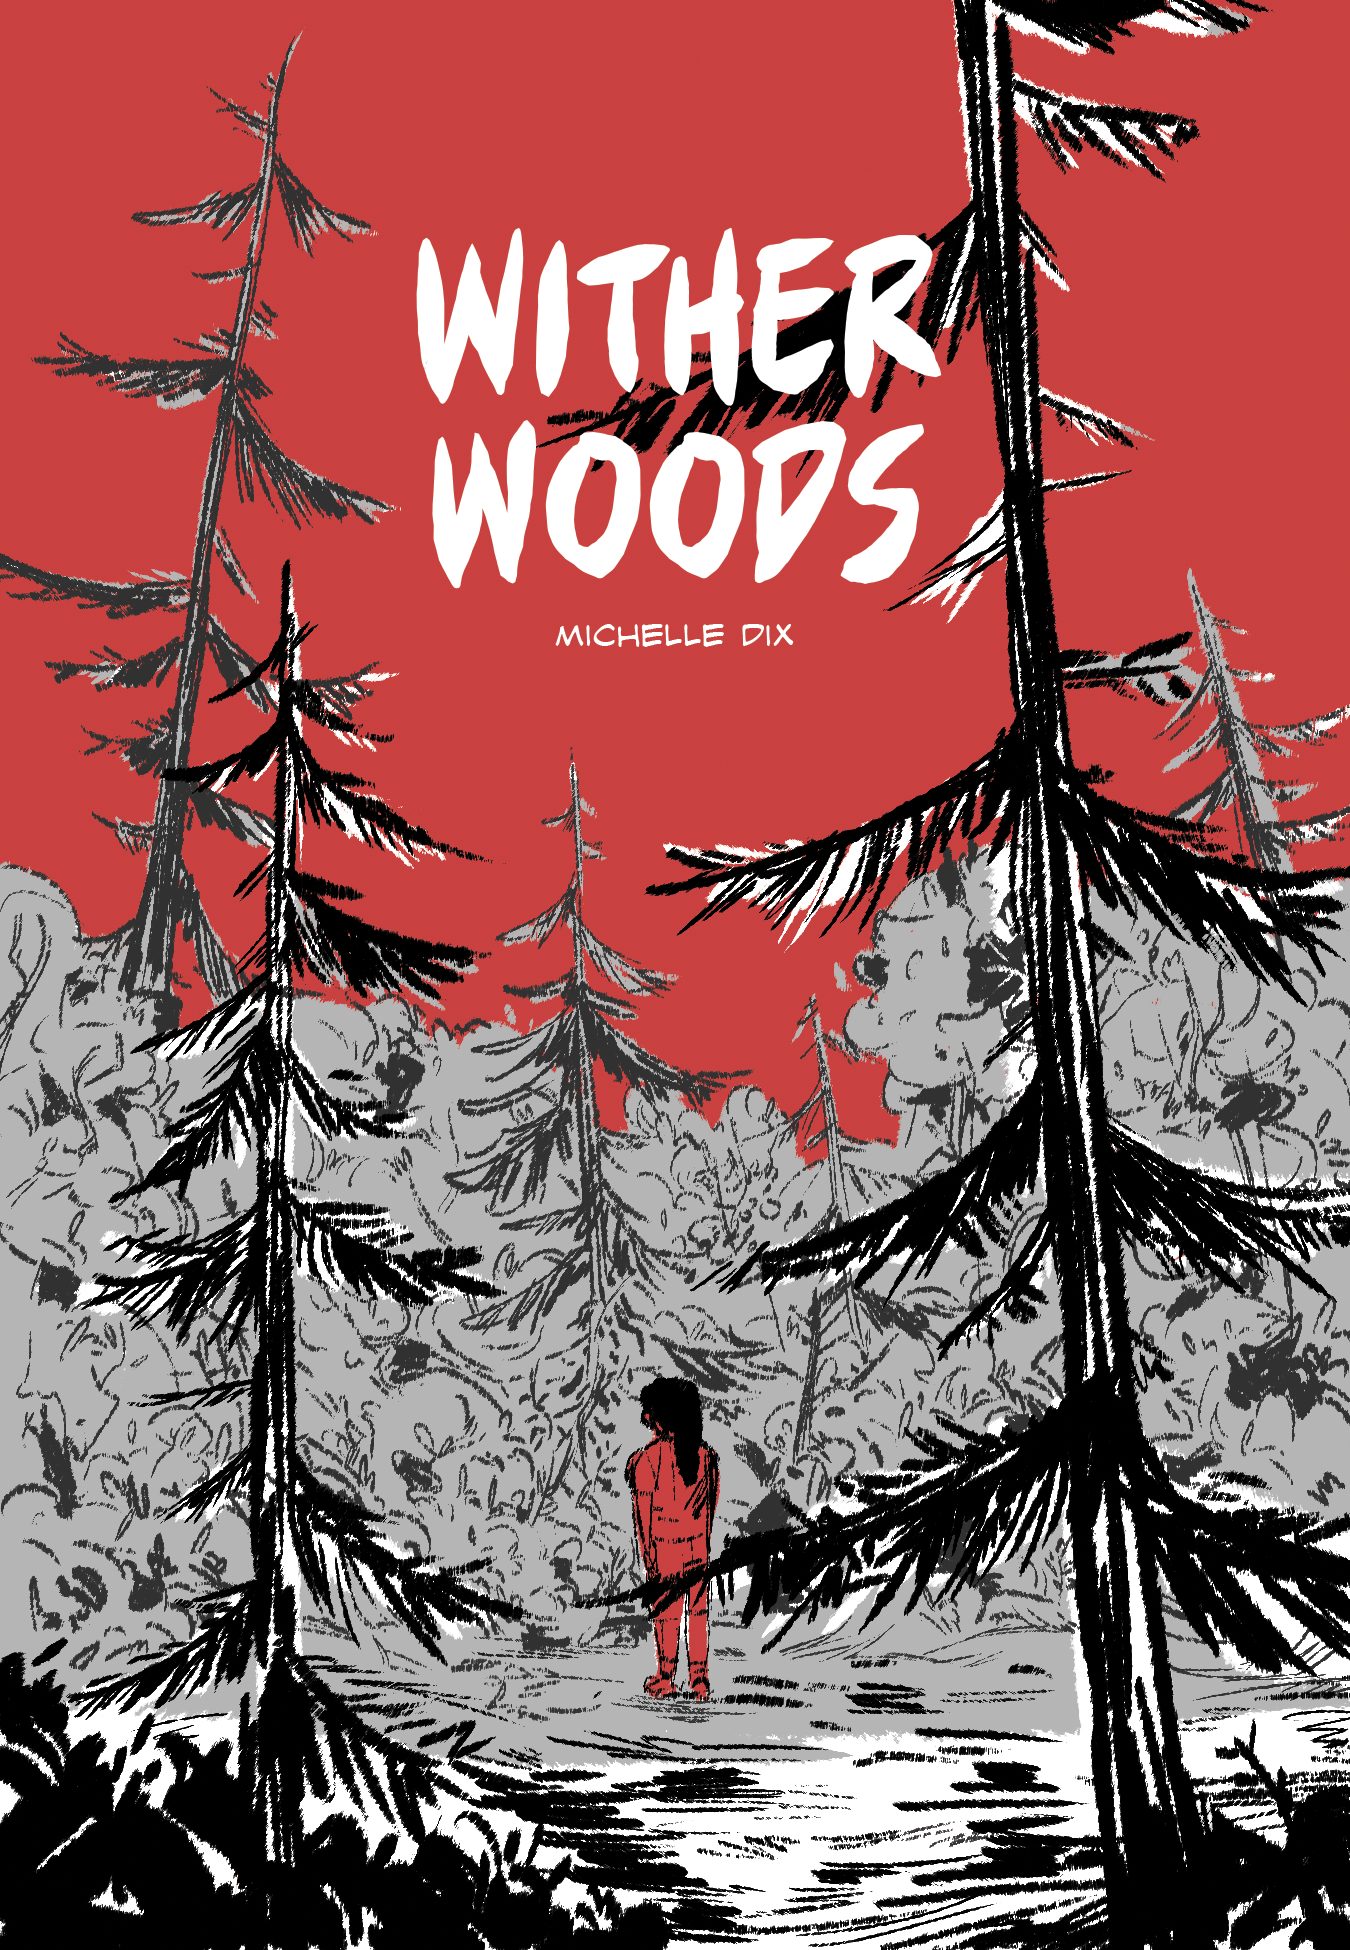 A few pages from my comic WitherWoods, a short horror suspense comic about a witch living in the woods.